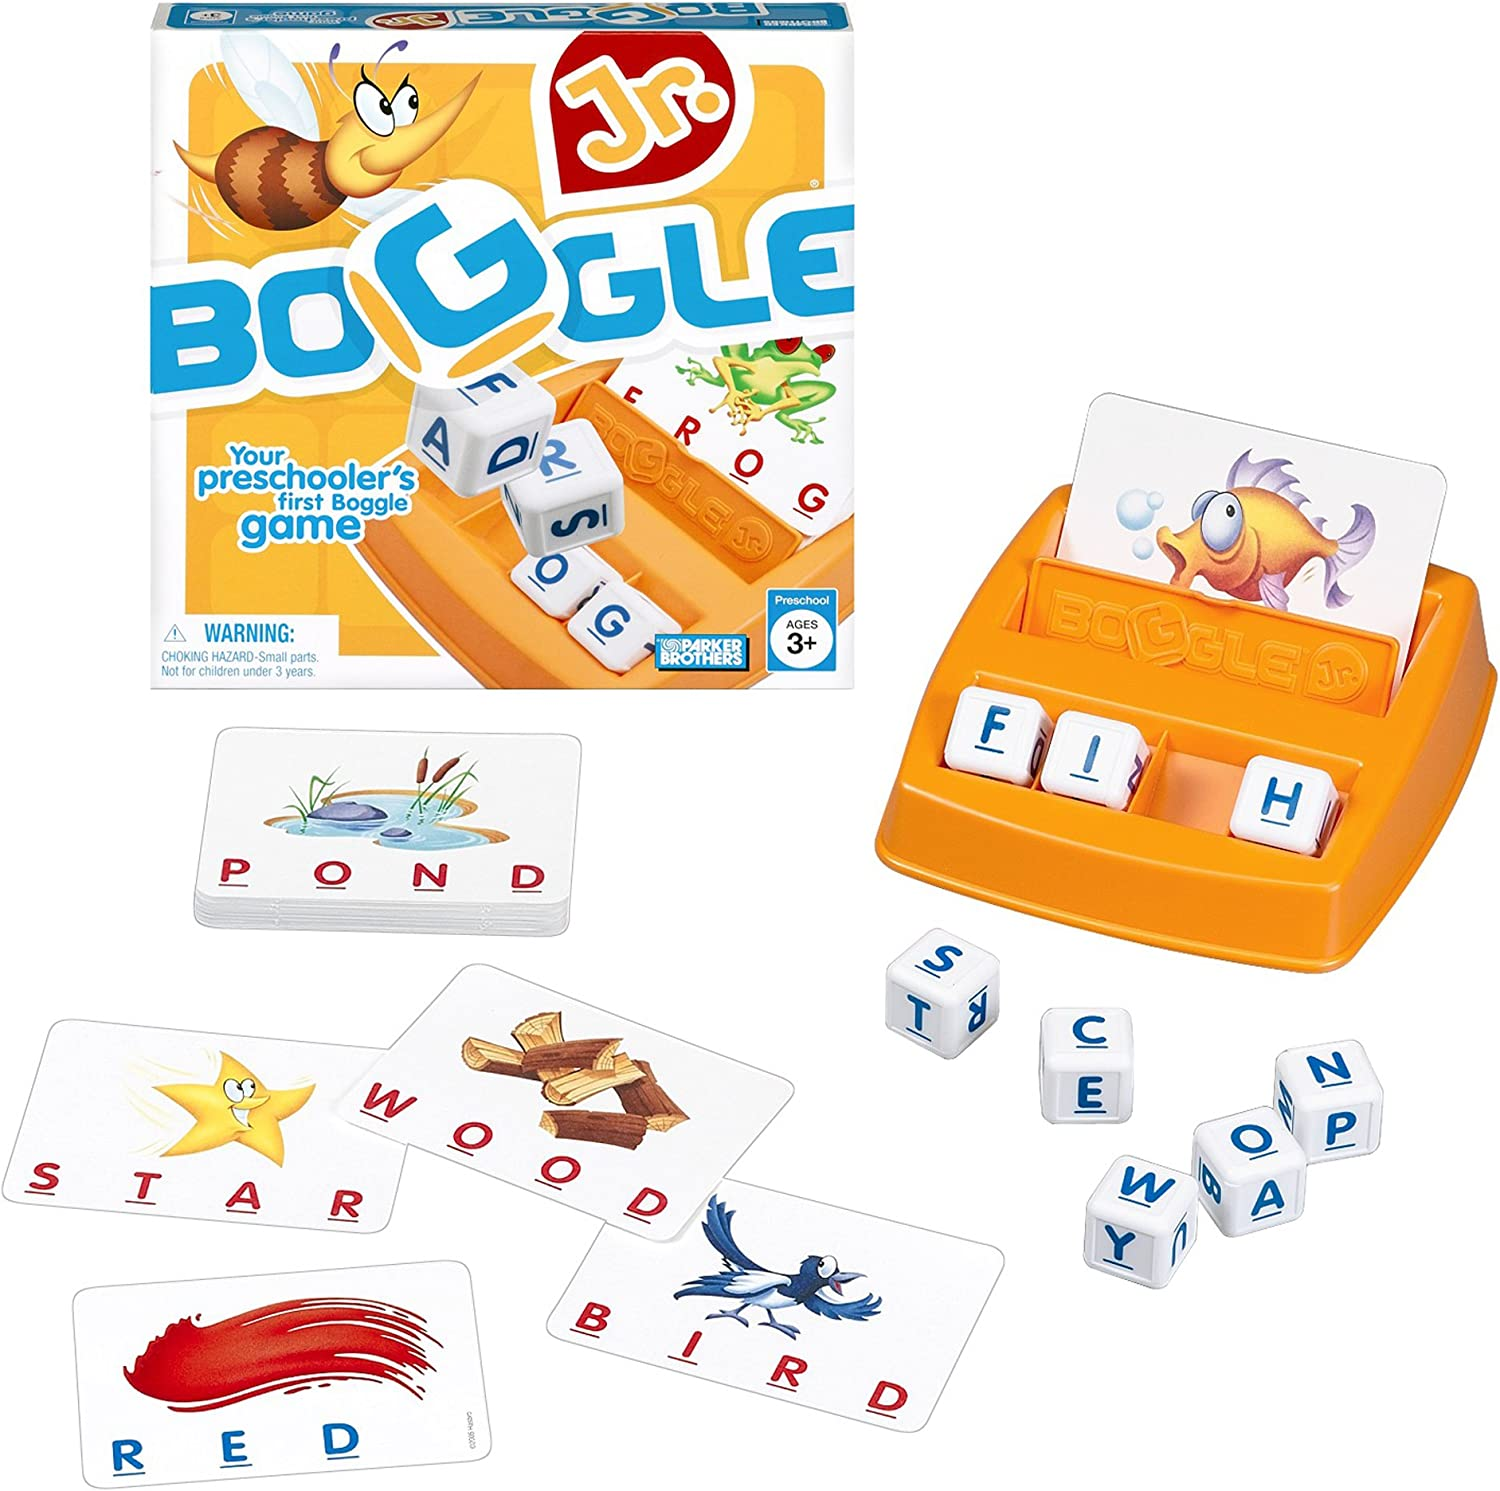 boggleboard game for reading fluency